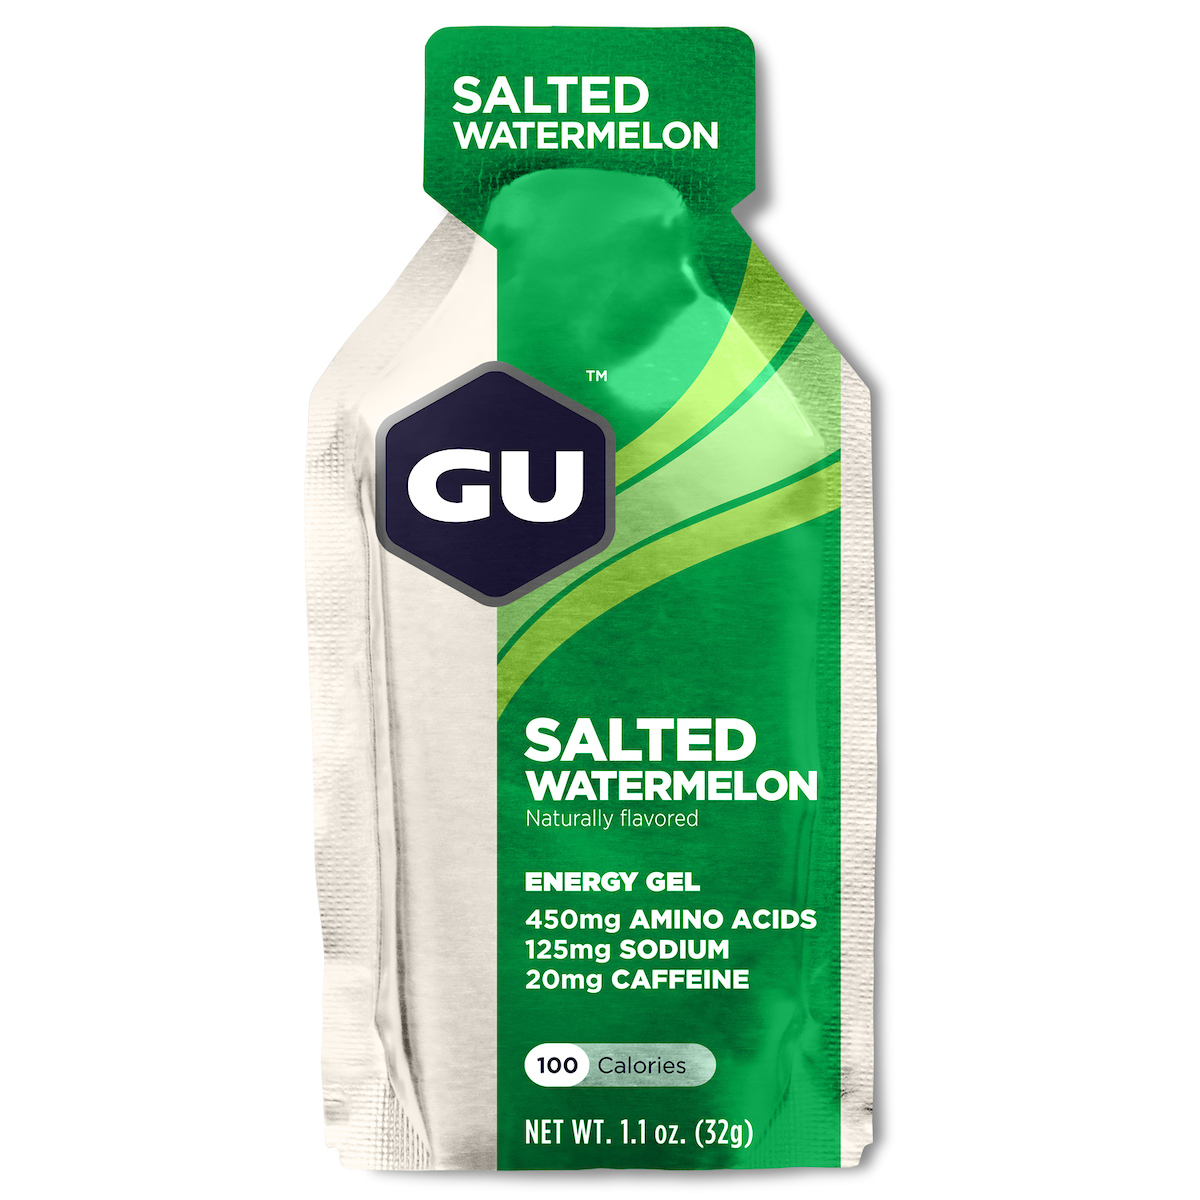 NPEU Salted Watermelon, GU Gel, 24 Pkt Ctn